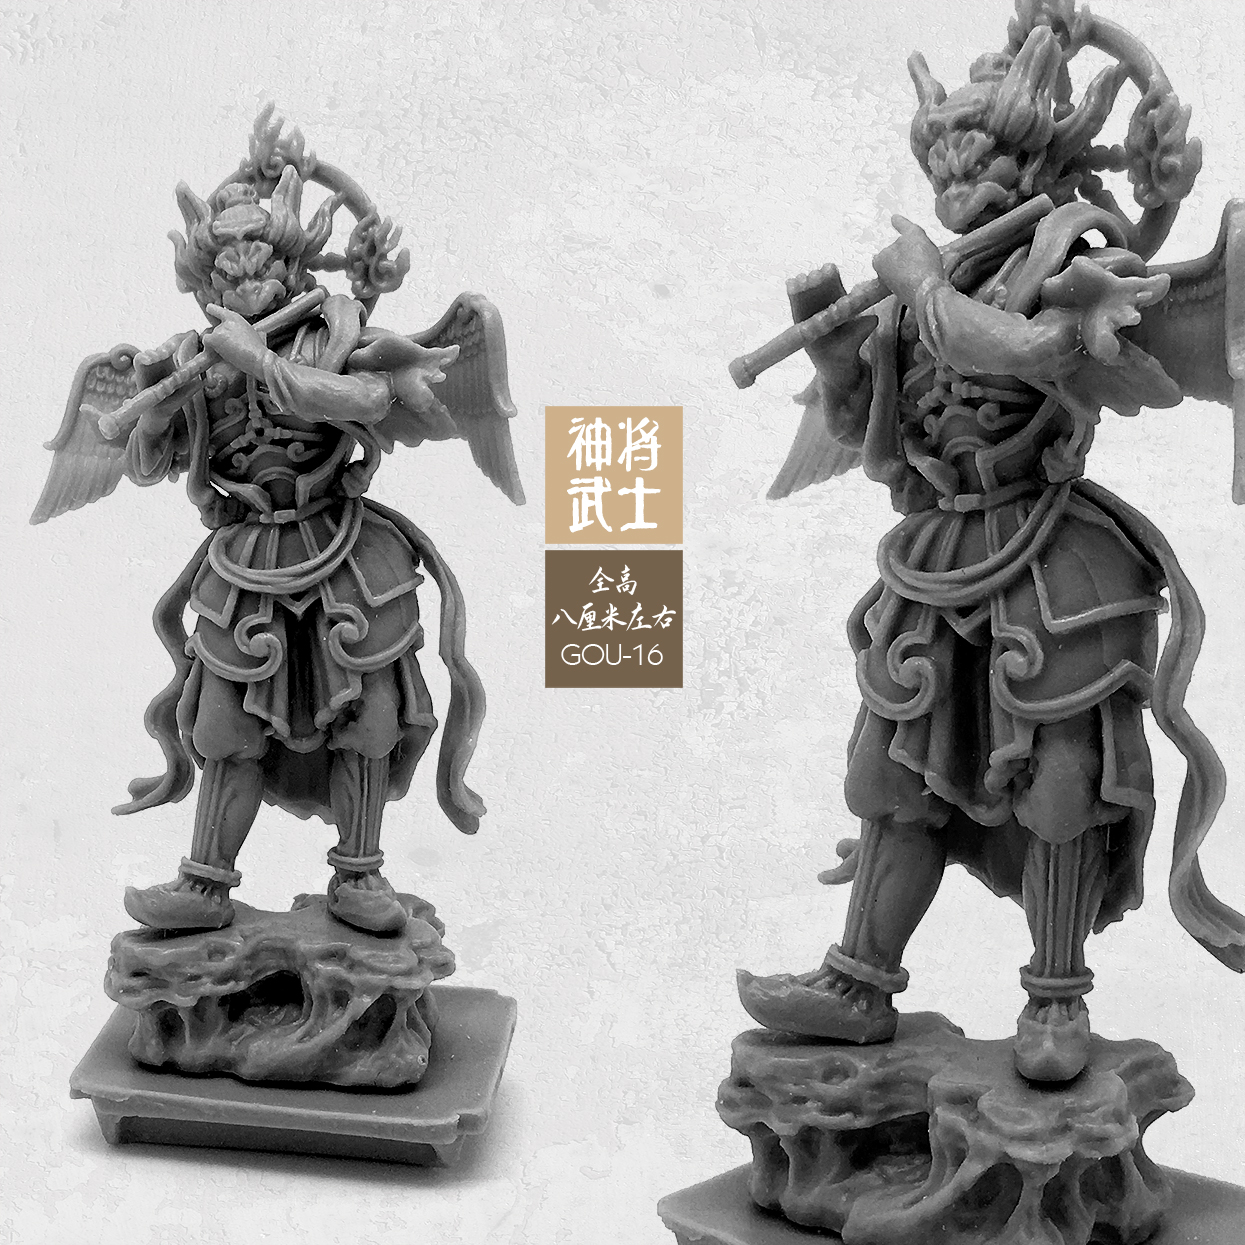 1/35 Resin Figure Soldier Model Of Ancient Oriental Images Unmounted Gou-16